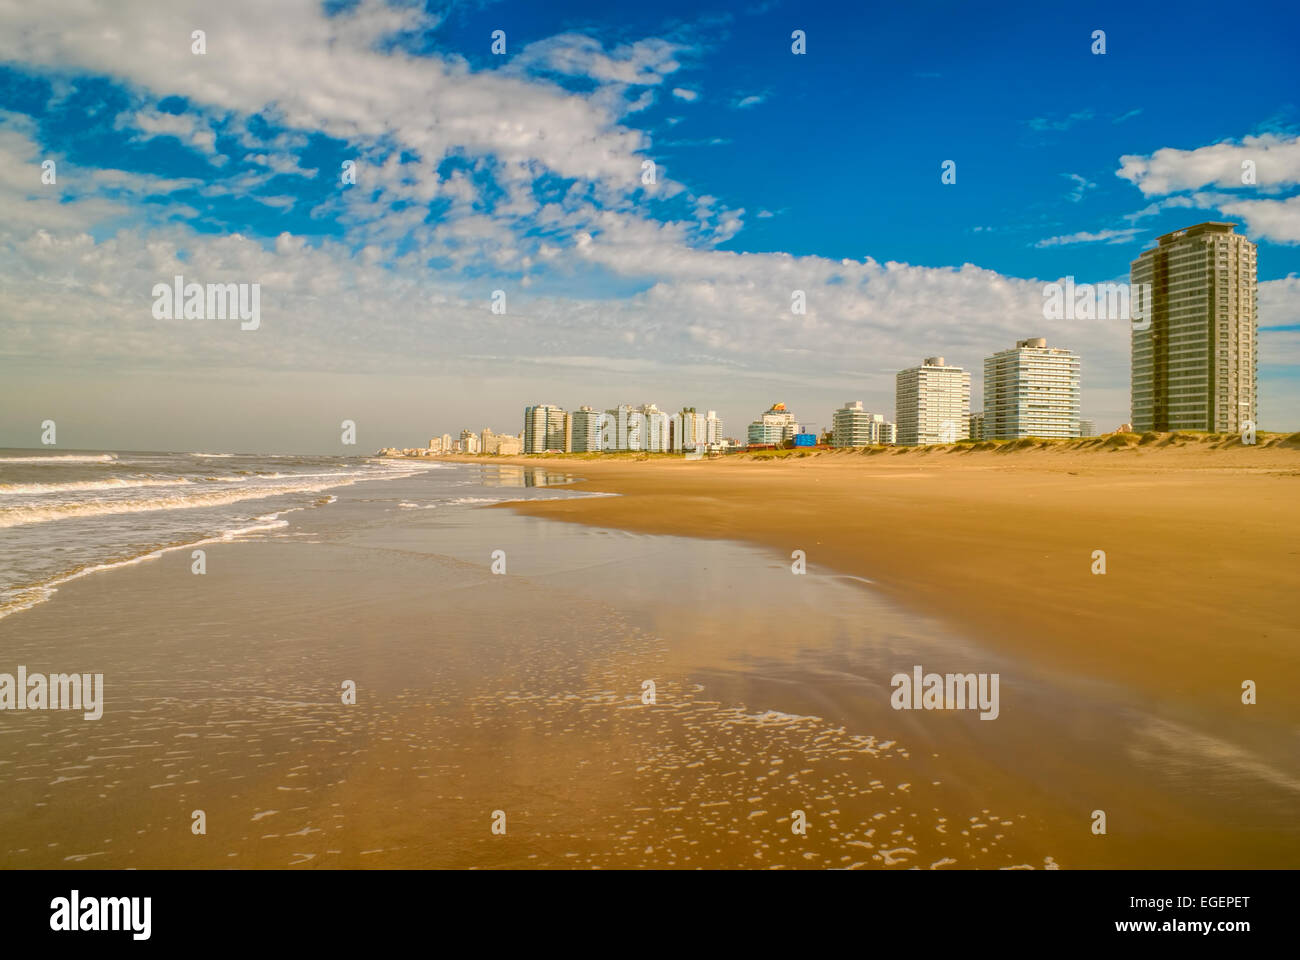 Panoramic view of a sandy beach in Punta del Este Stock Photo